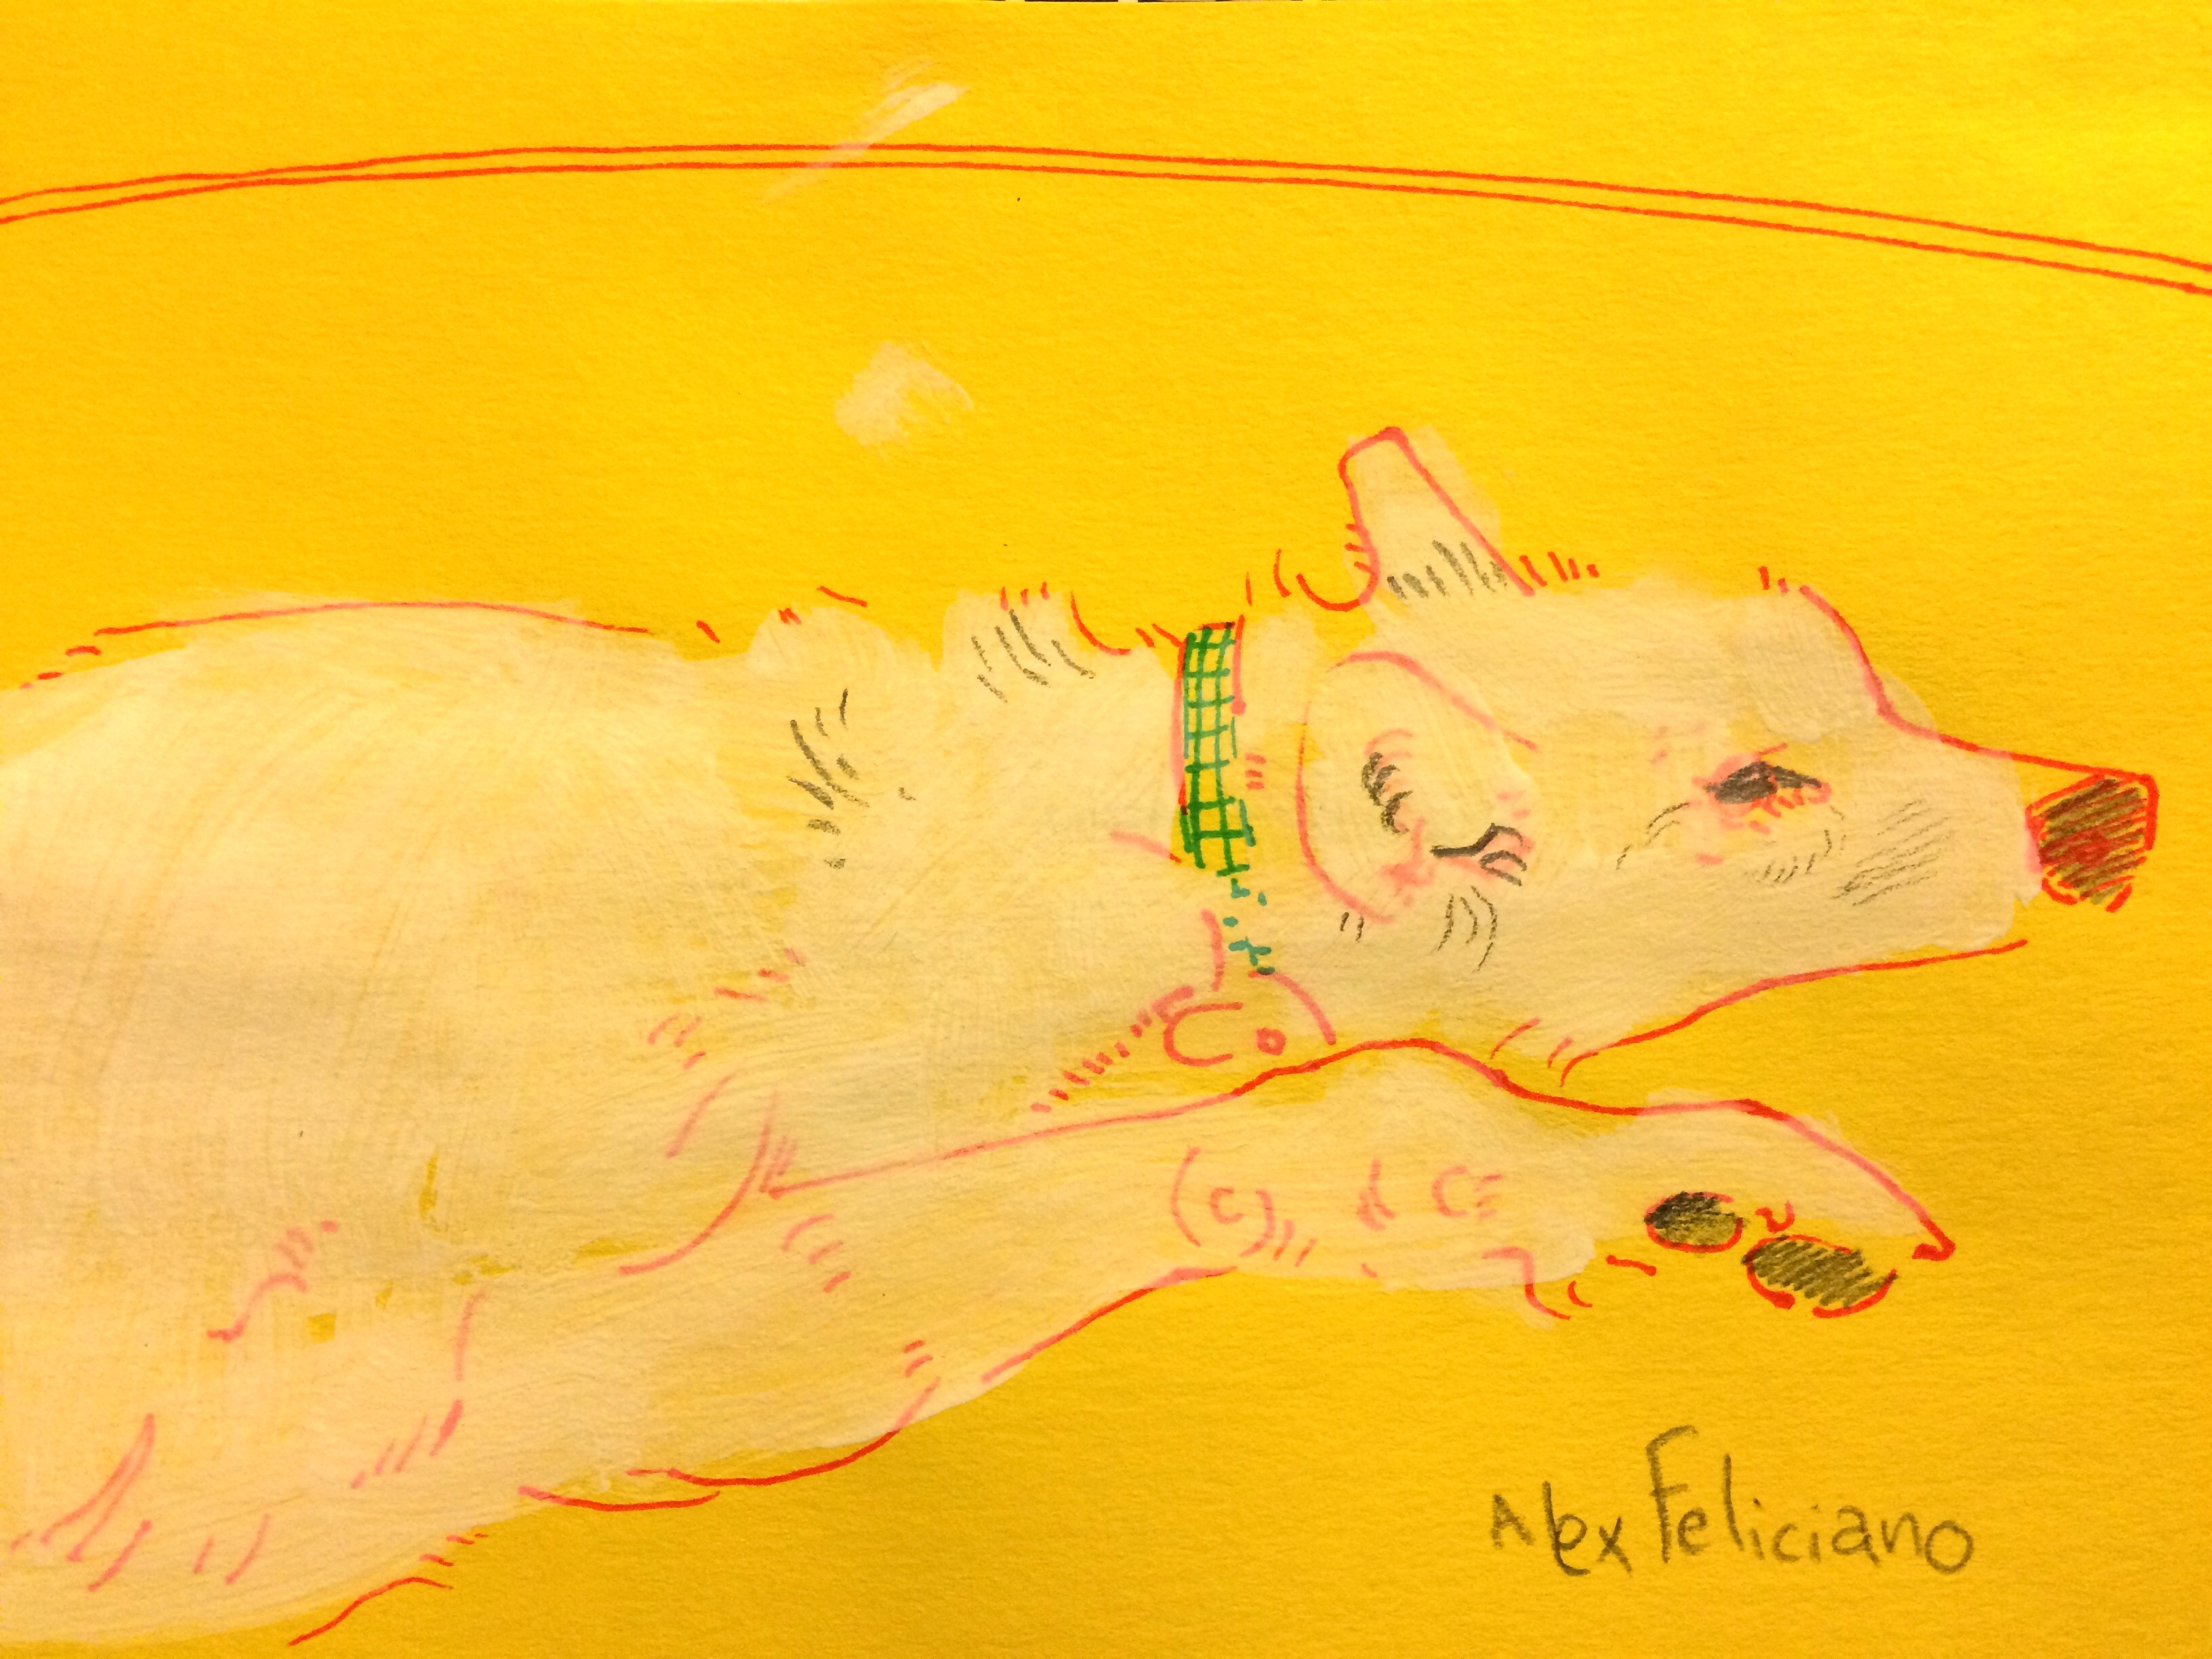 Maggie on Yellow is now in the FaceBook shop.